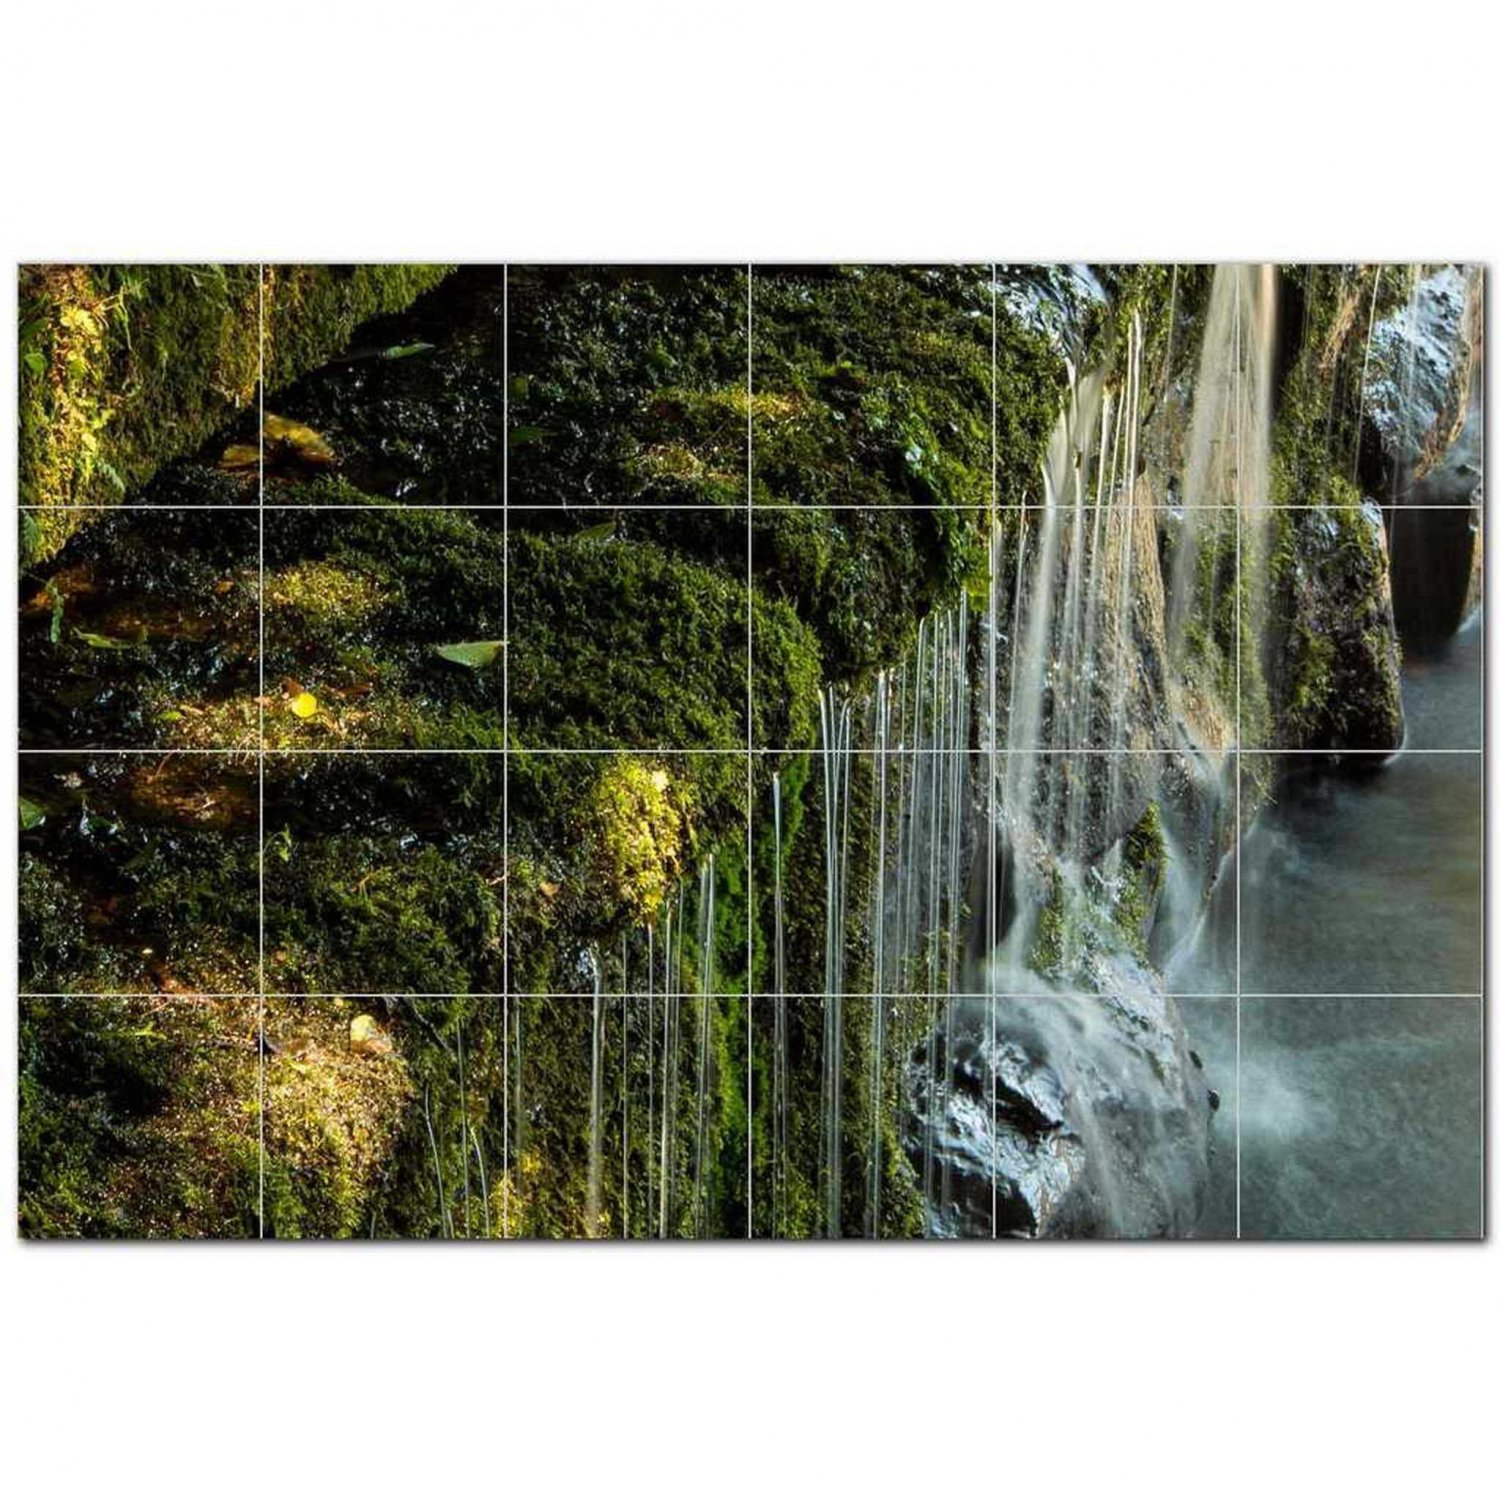 Waterfalls Ceramic Tile Mural Kitchen Backsplash Bathroom Shower 401858